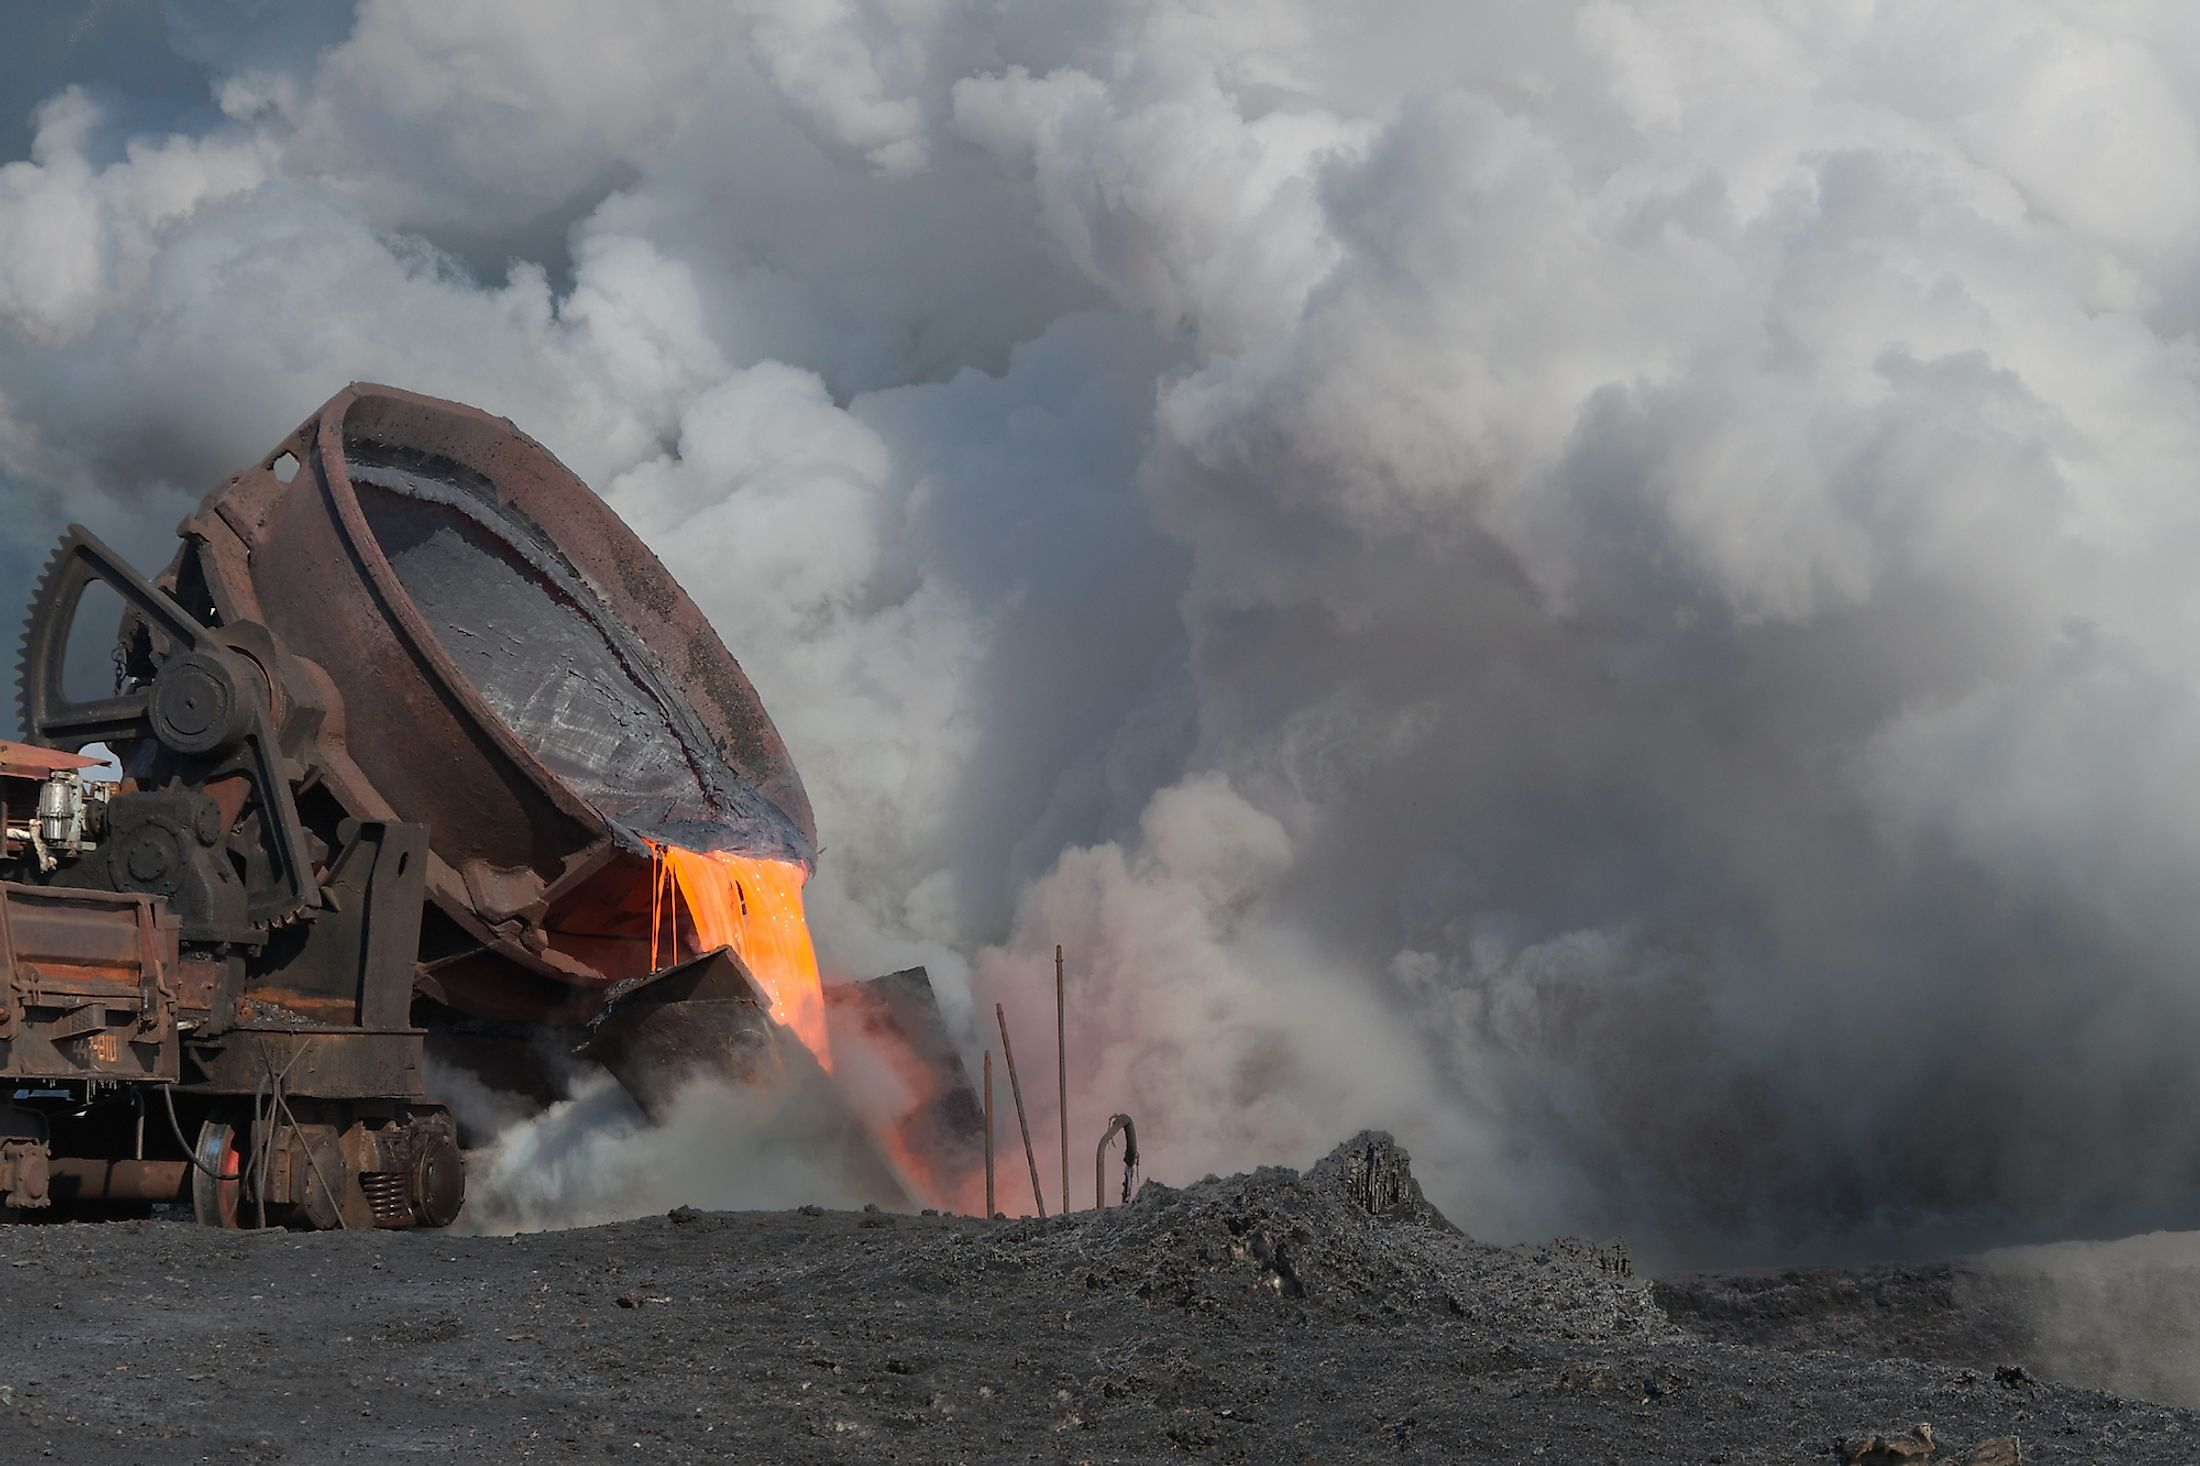 The liquid molten slag and a cloud of hot steam generated during the granulation of the slag polluting the land. Image credit: Nordroden/Shutterstock.com